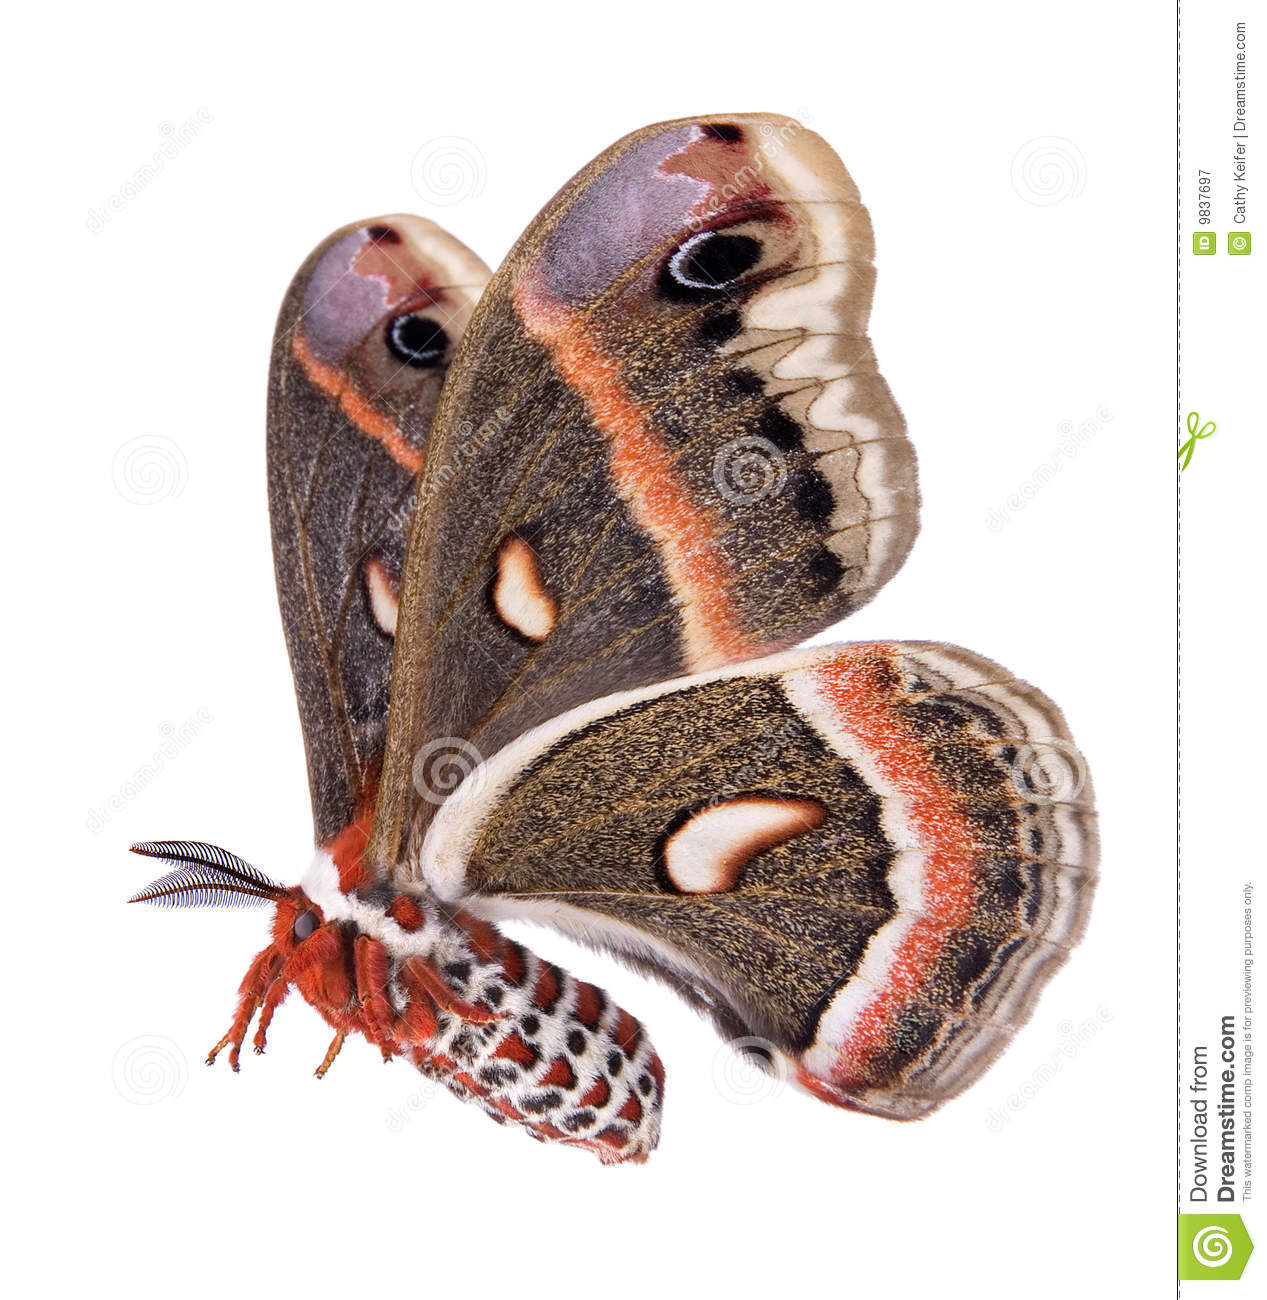 Cecropia Moth clipart #20, Download drawings